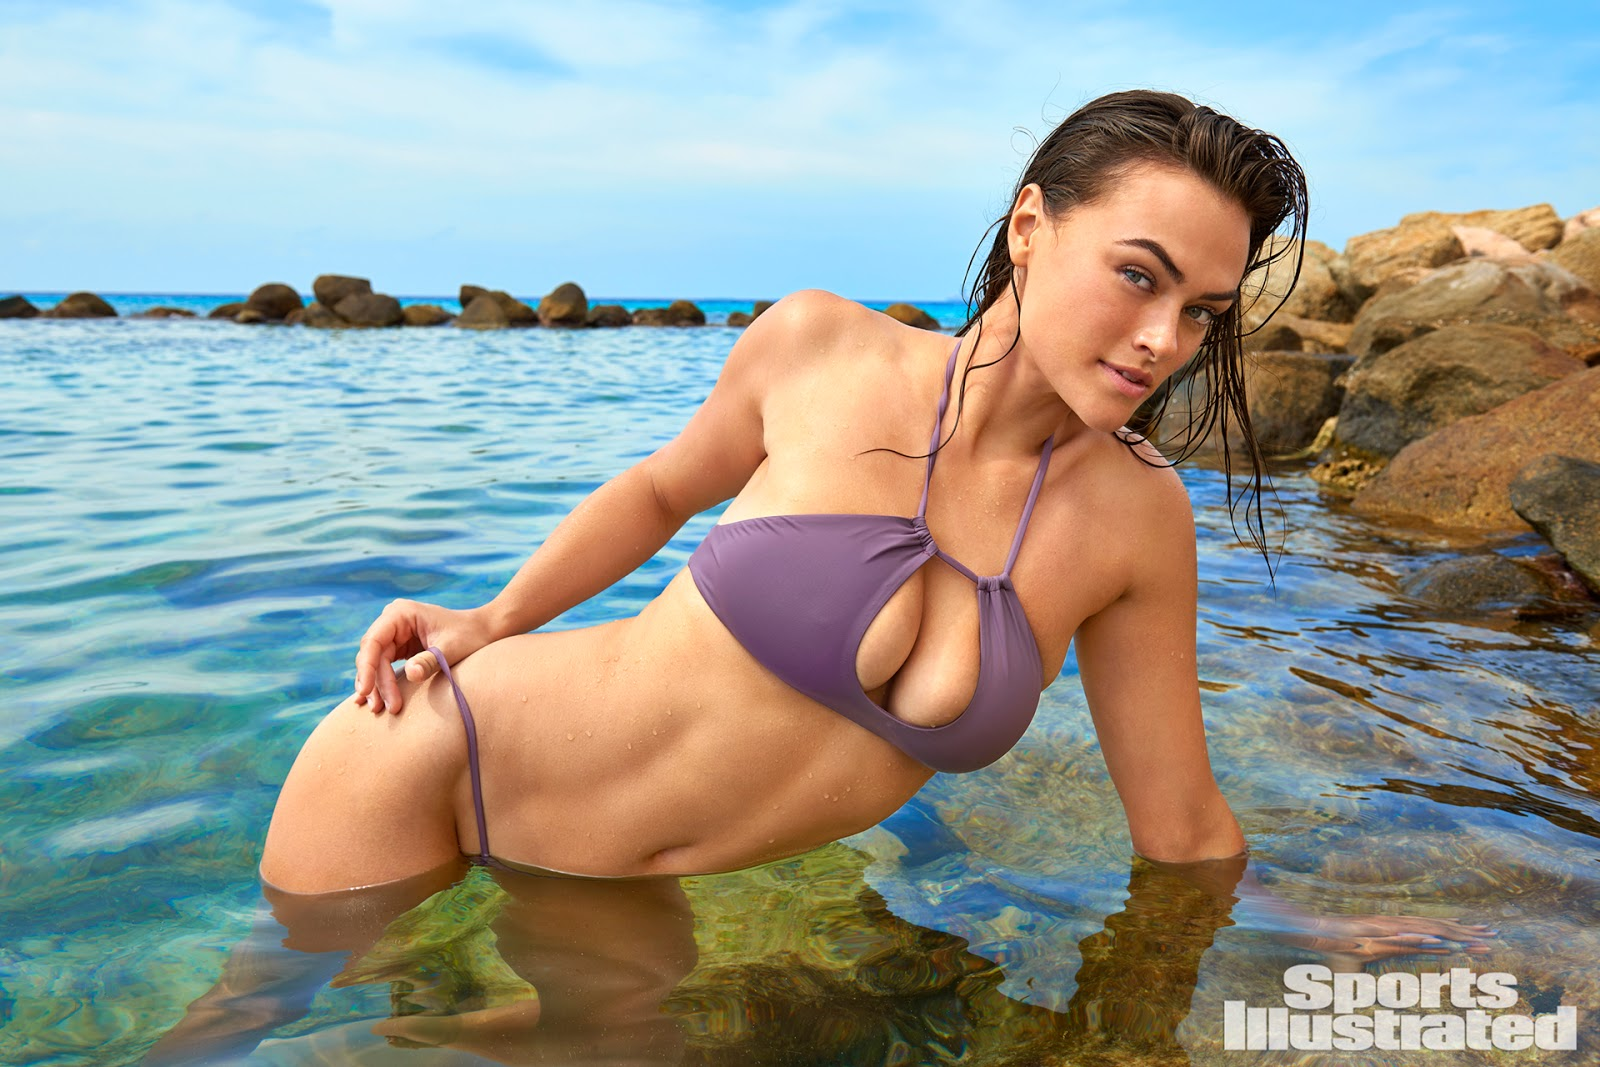 Myla Dalbesio was photographed by Yu Tsai in Aruba.